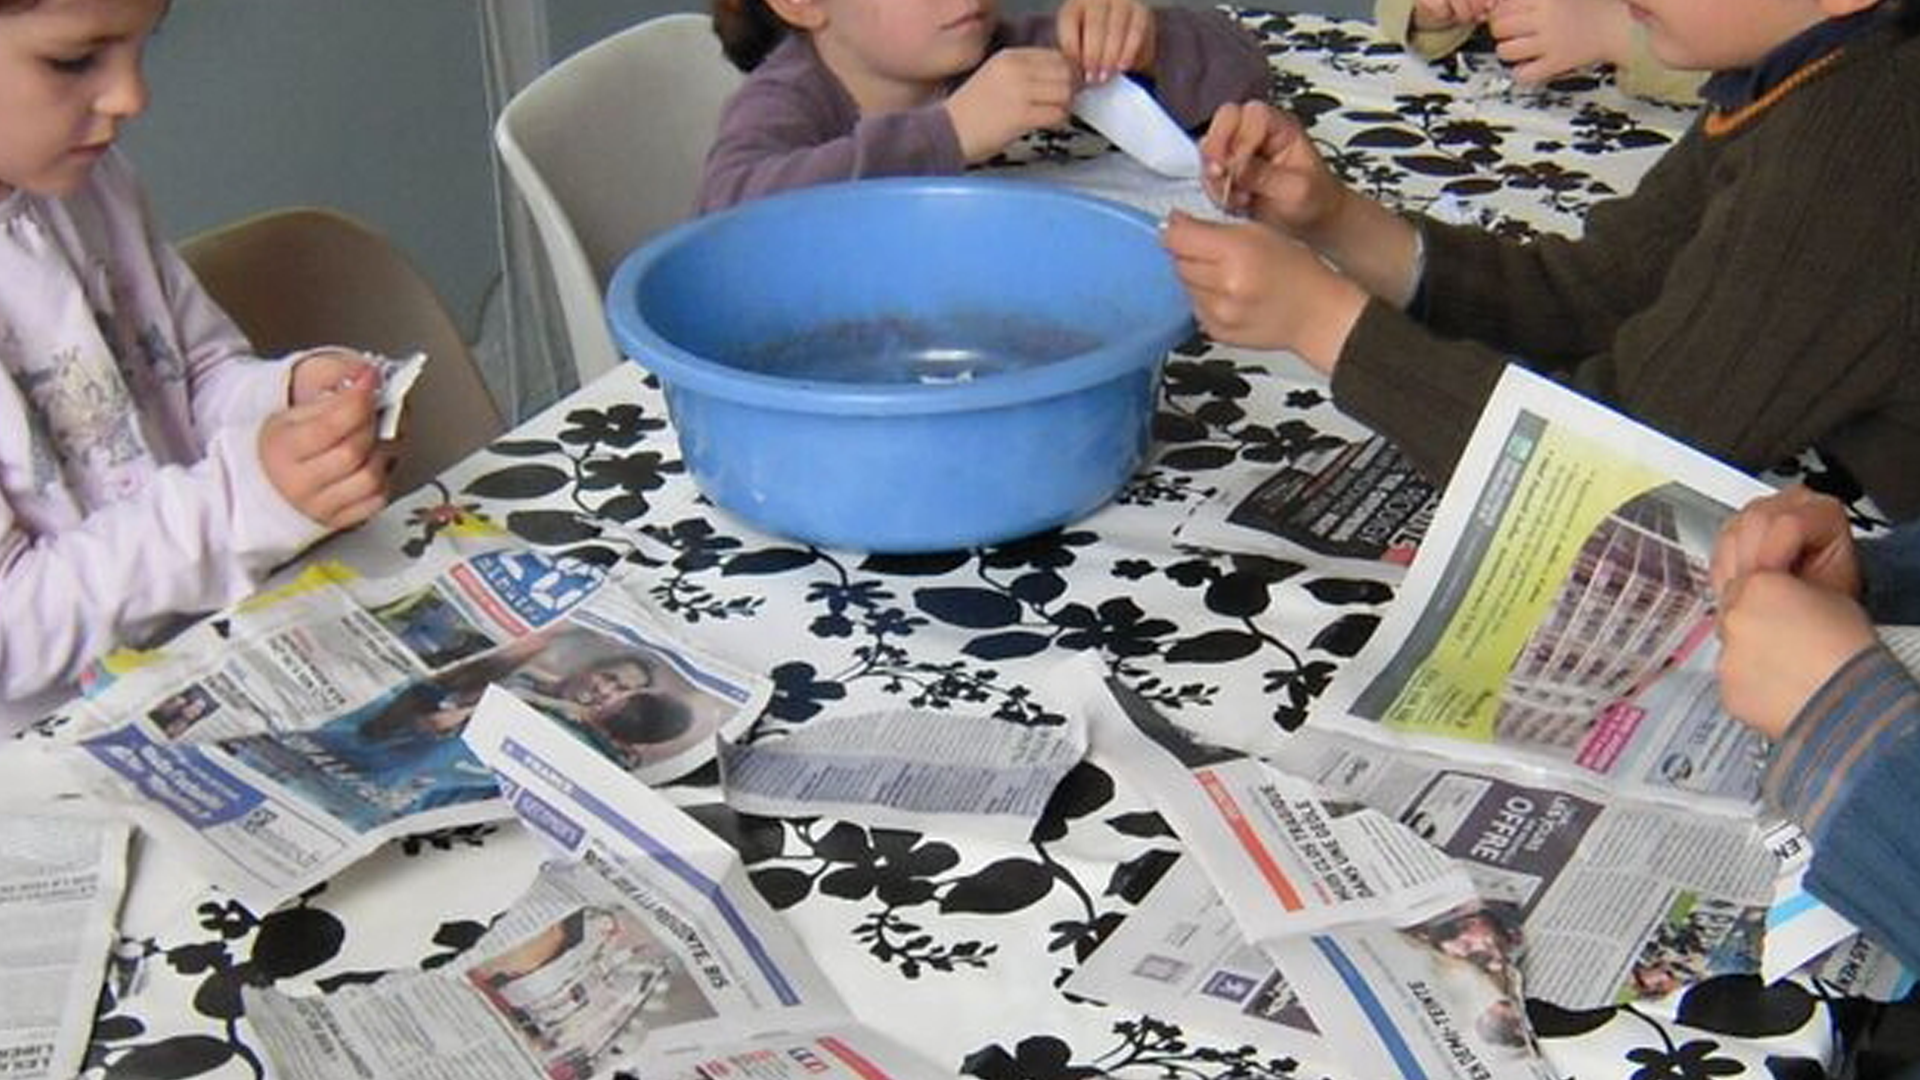 Blogue_FR_article_ecolo_creche_enfants_papier_recyclé_2